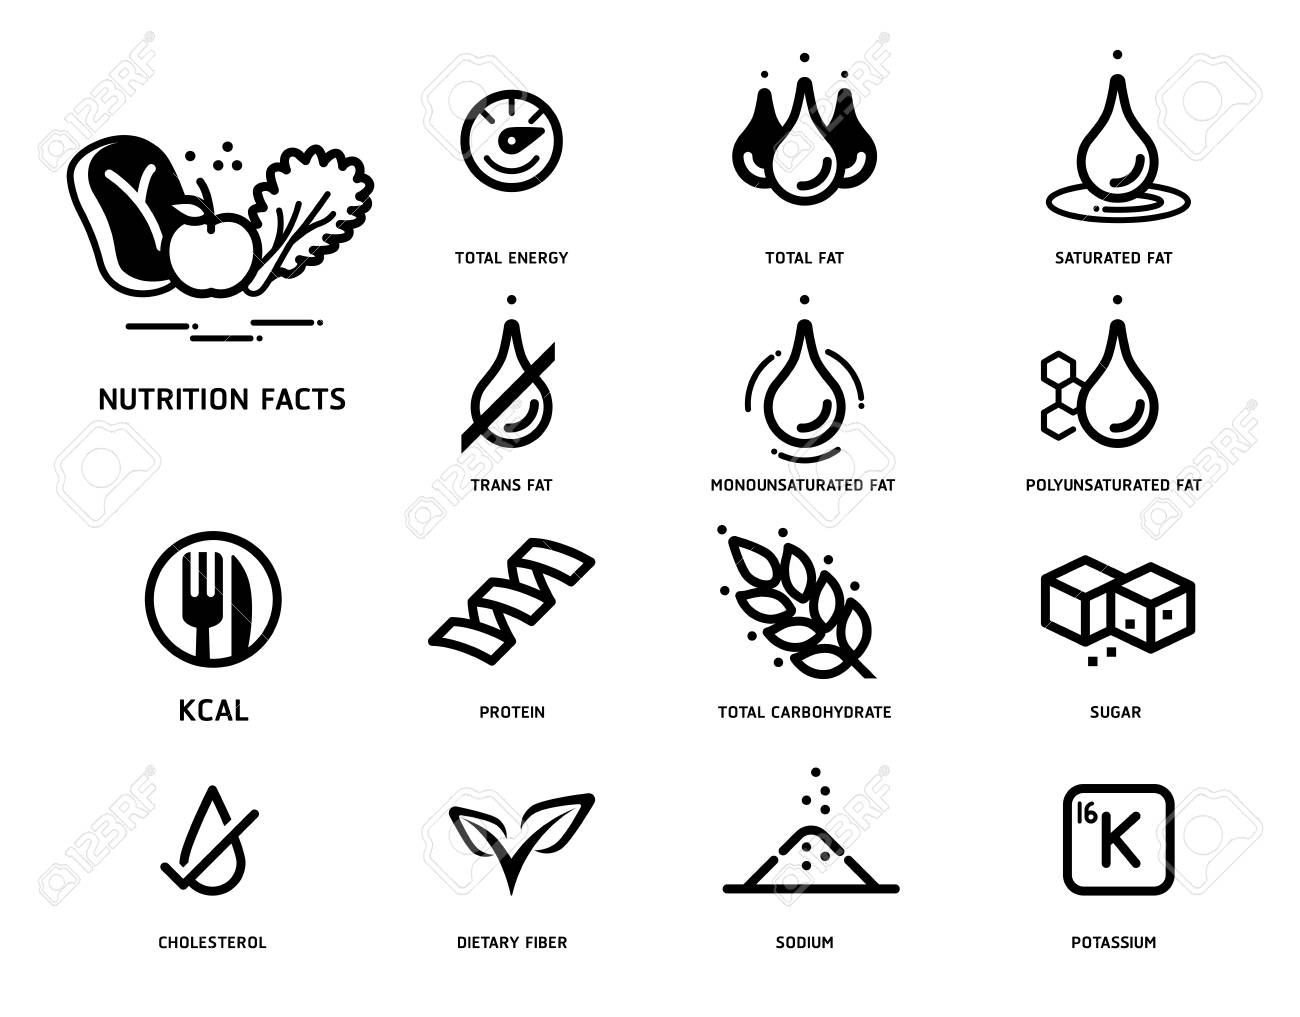 Nutrition facts icon concept. Symbols of nutrients are common in food products collection. - 96046089